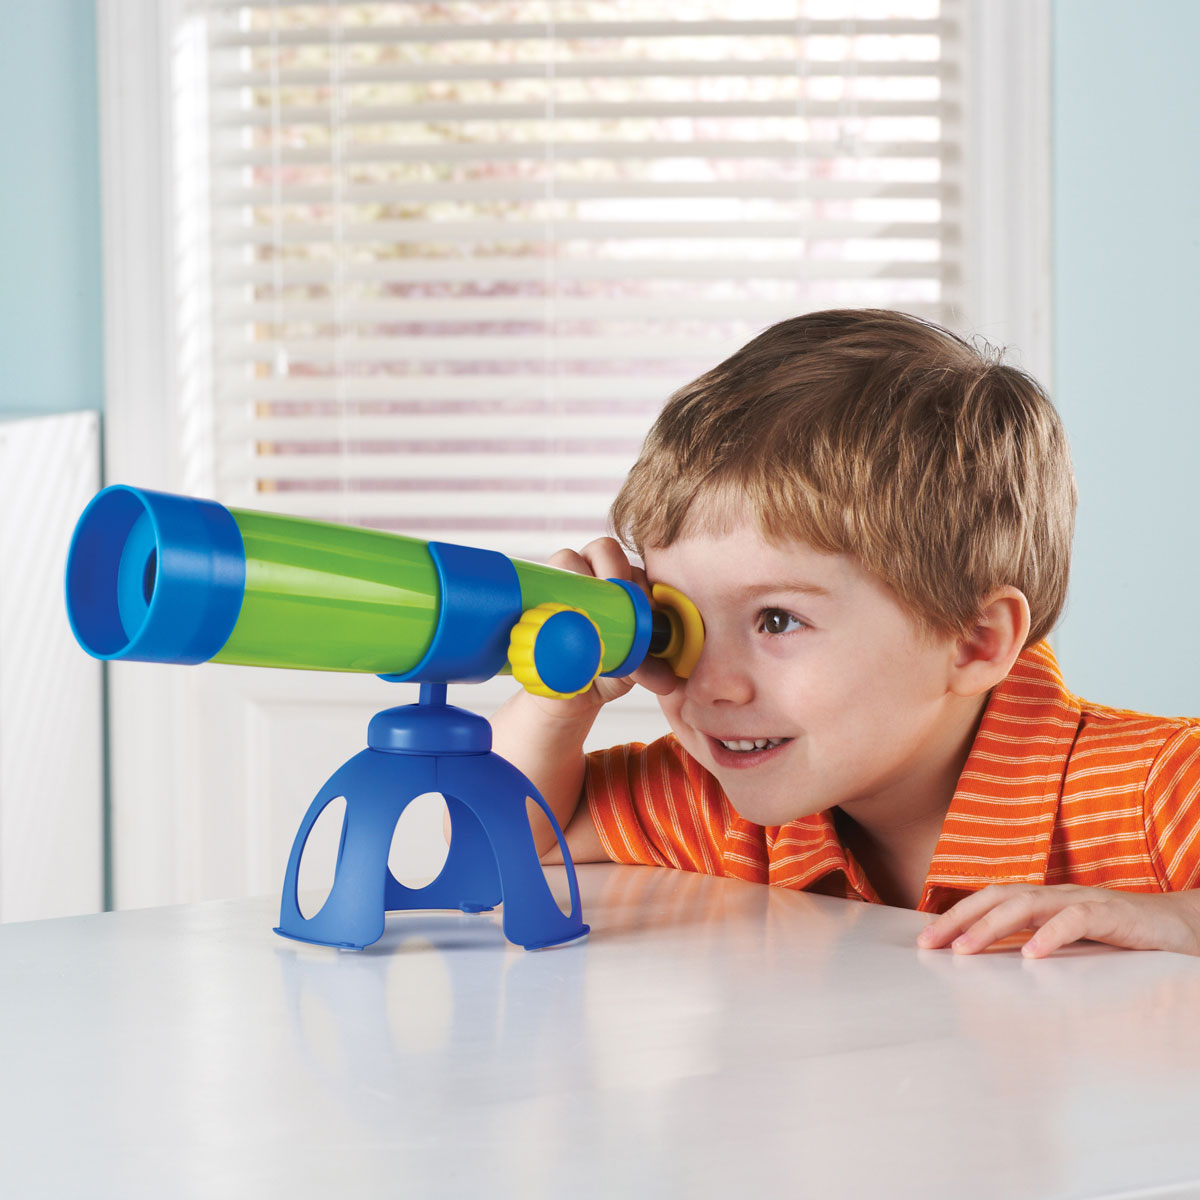 Buy Primary Science Telescope By Learning Resources